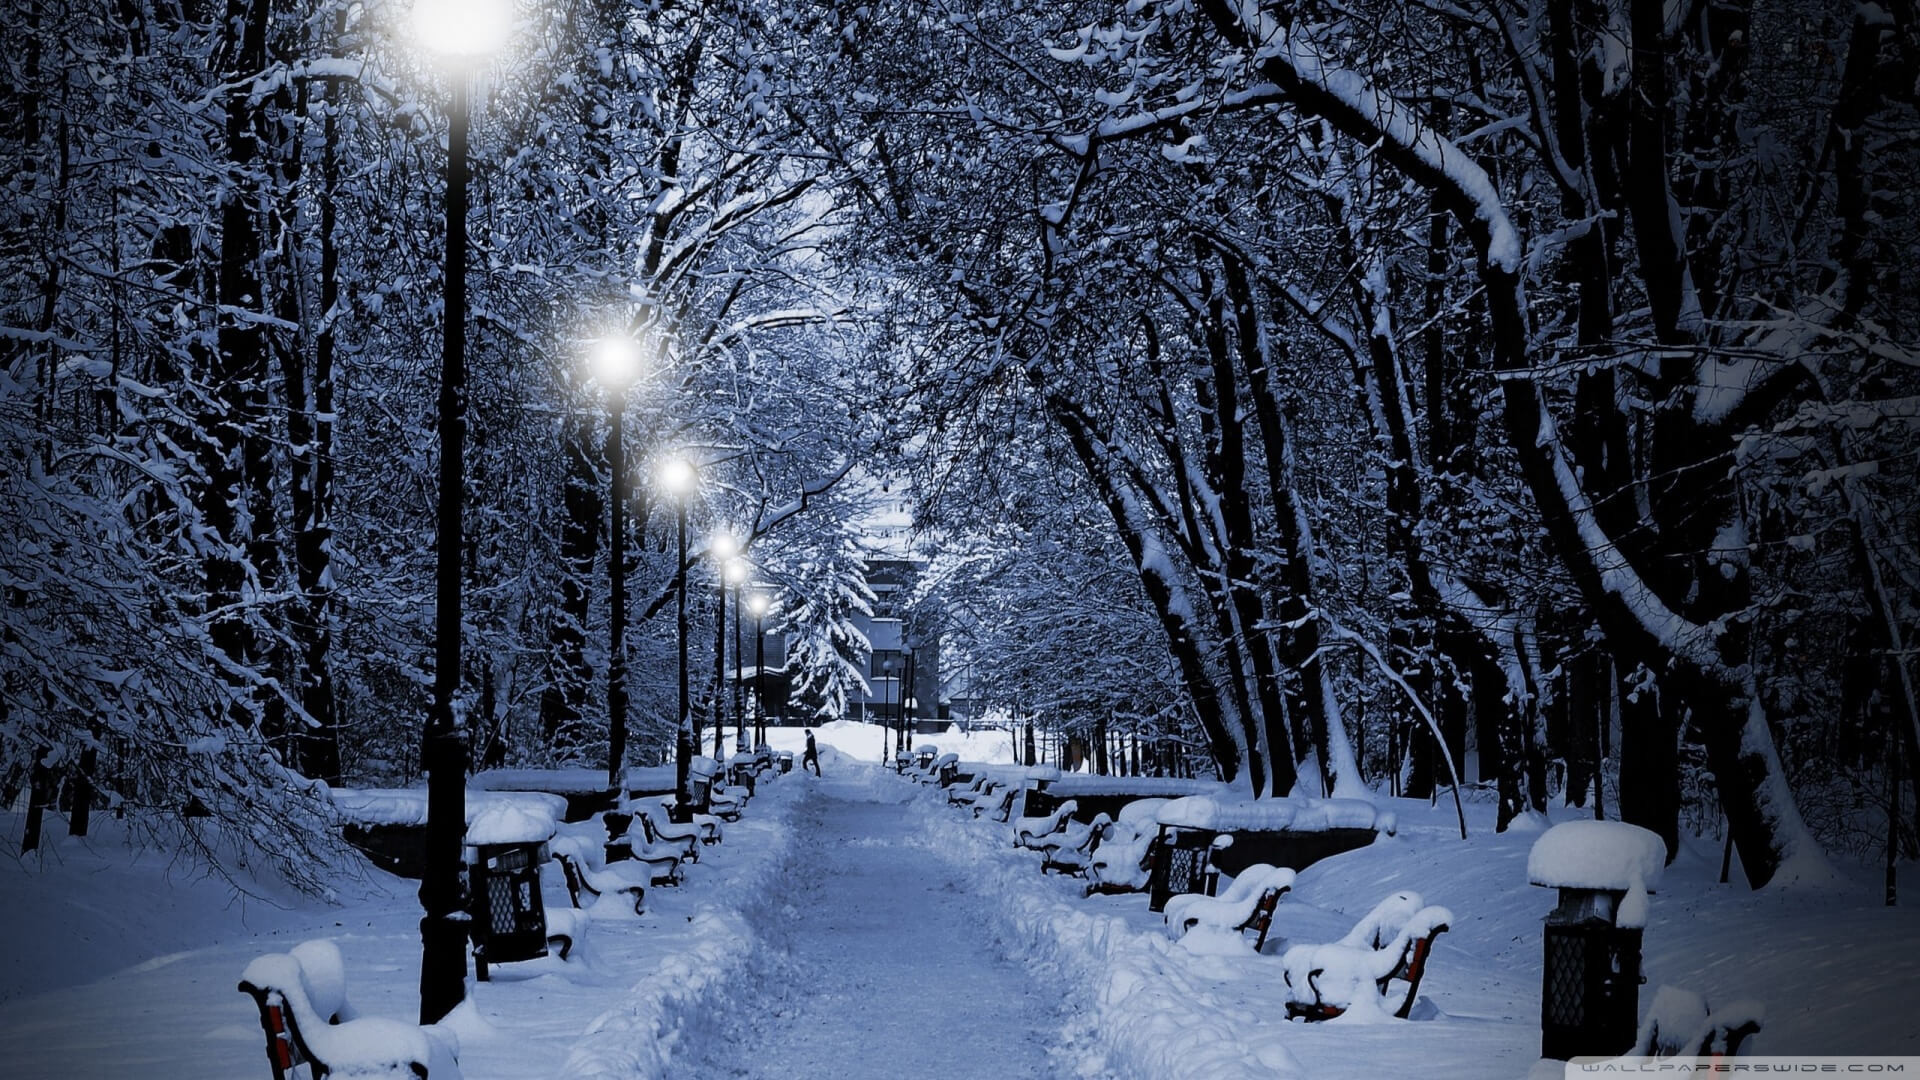 Winter Themed Backgrounds (12)